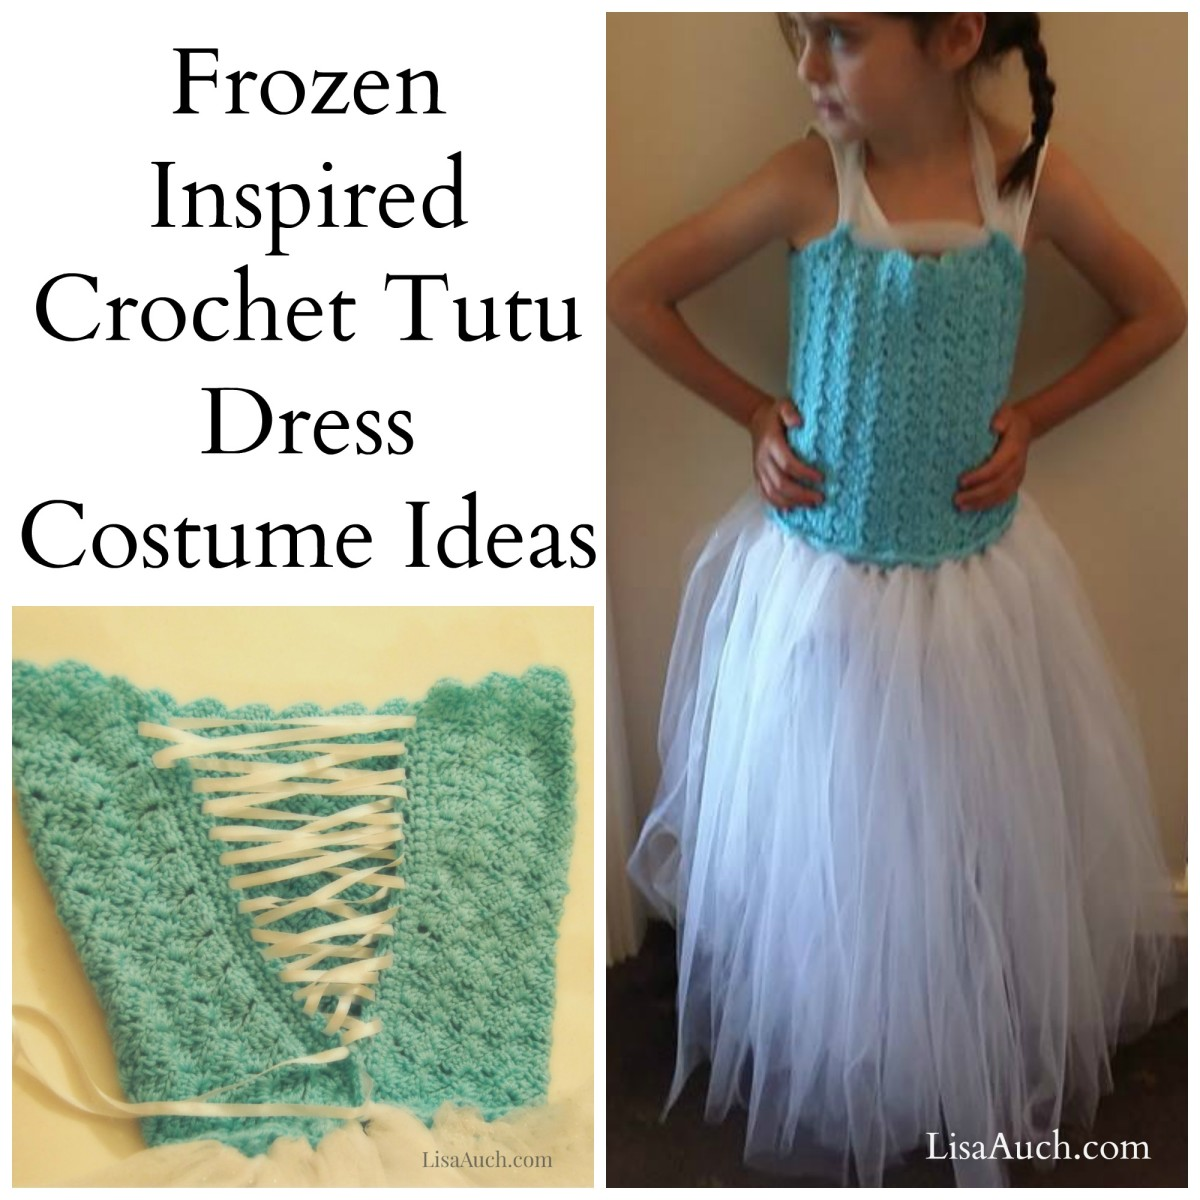 Frozen Costume Ideas - Elsa Inspired Tutu Dress